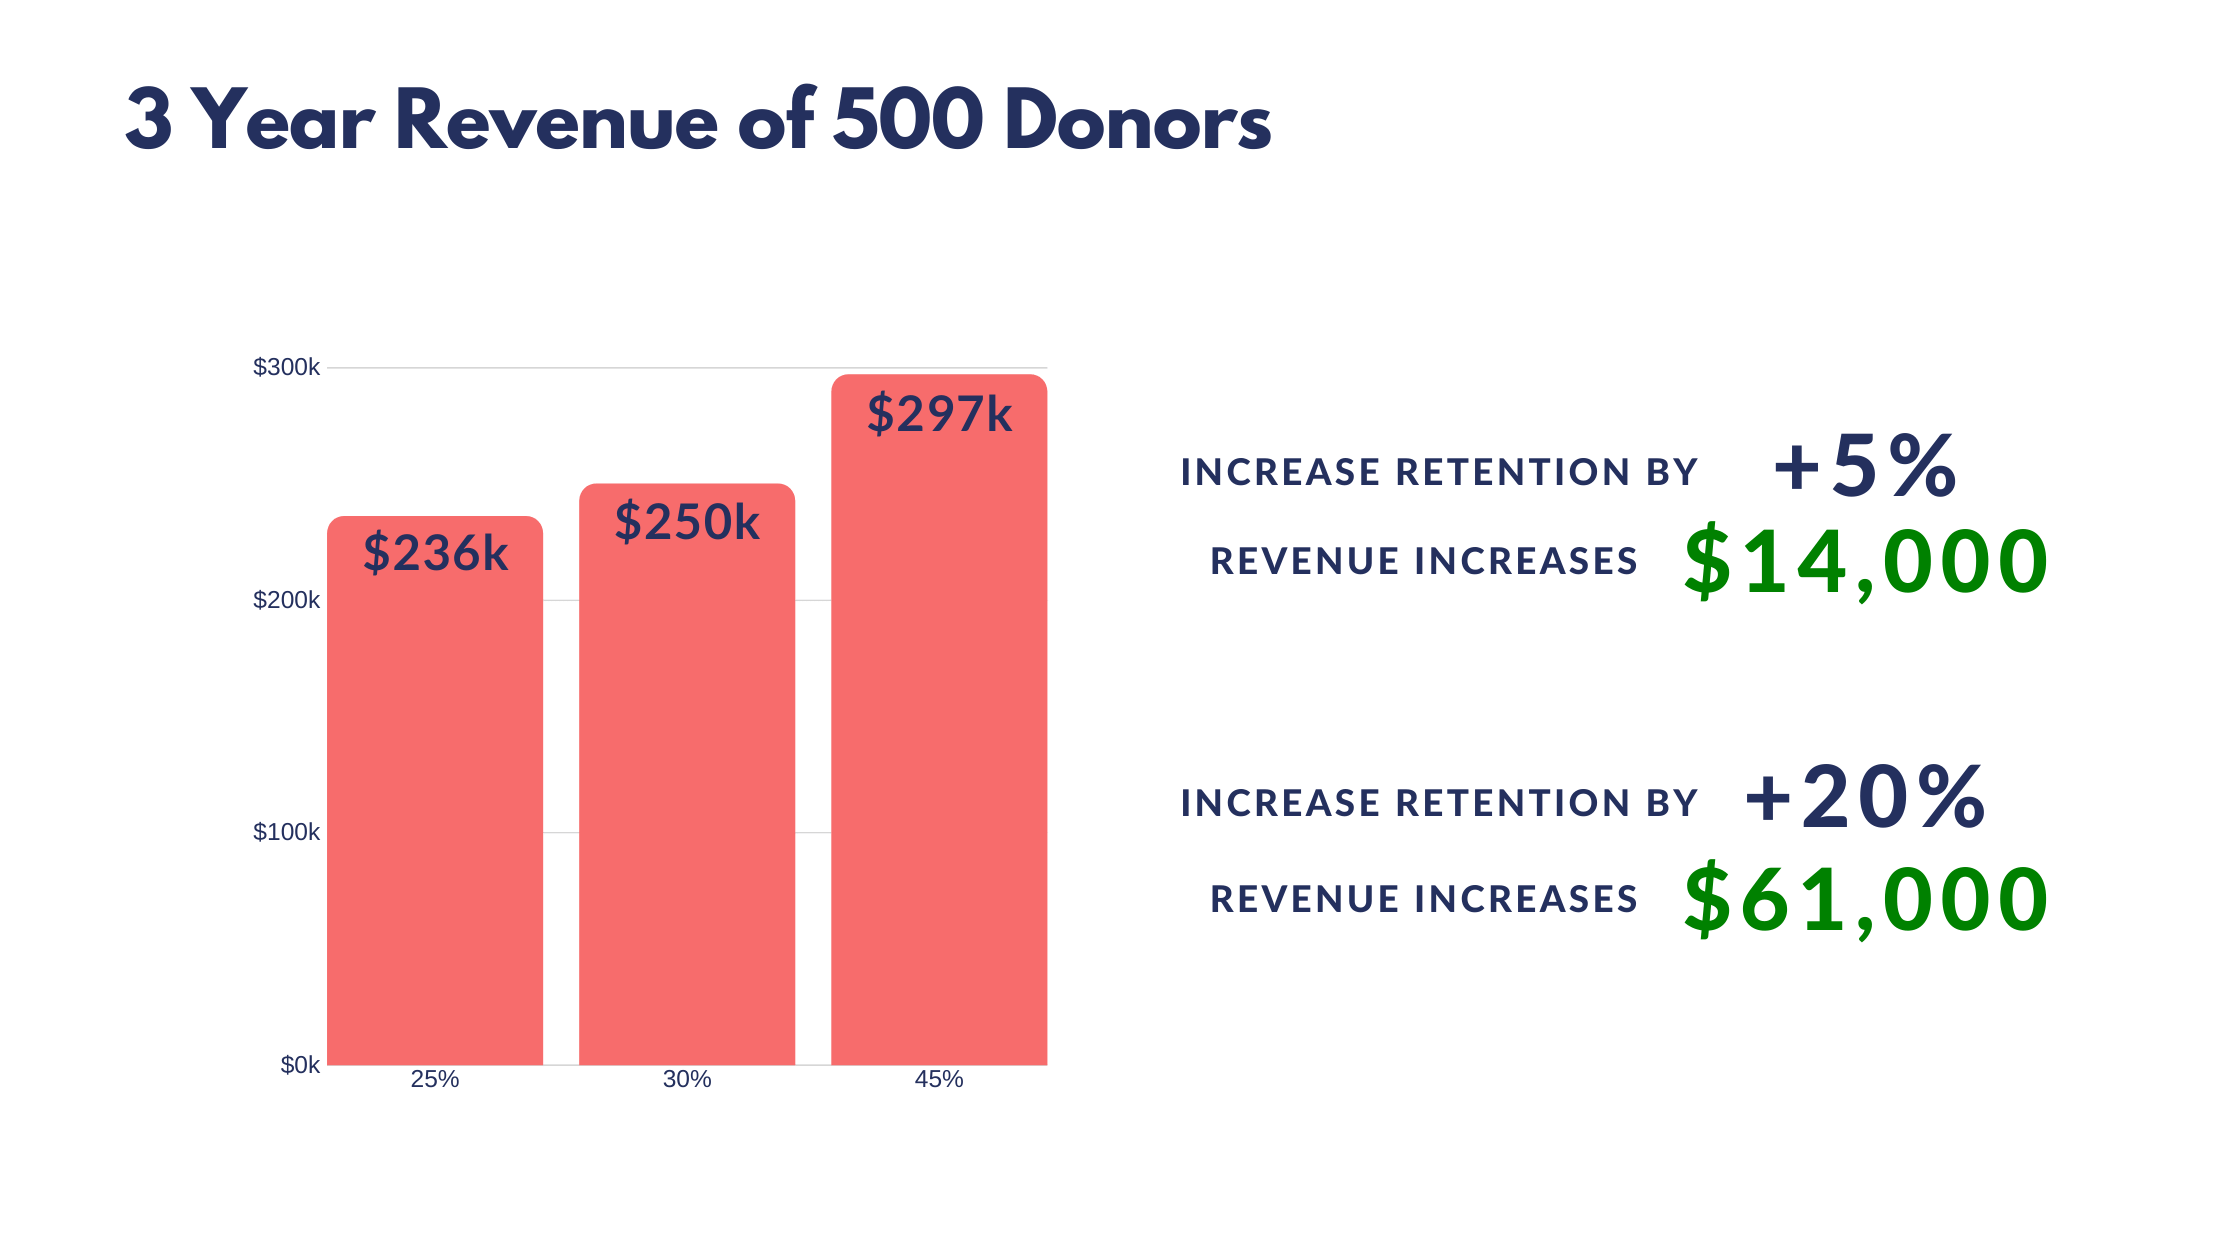 3 Year impact of donor retention on 500 donors